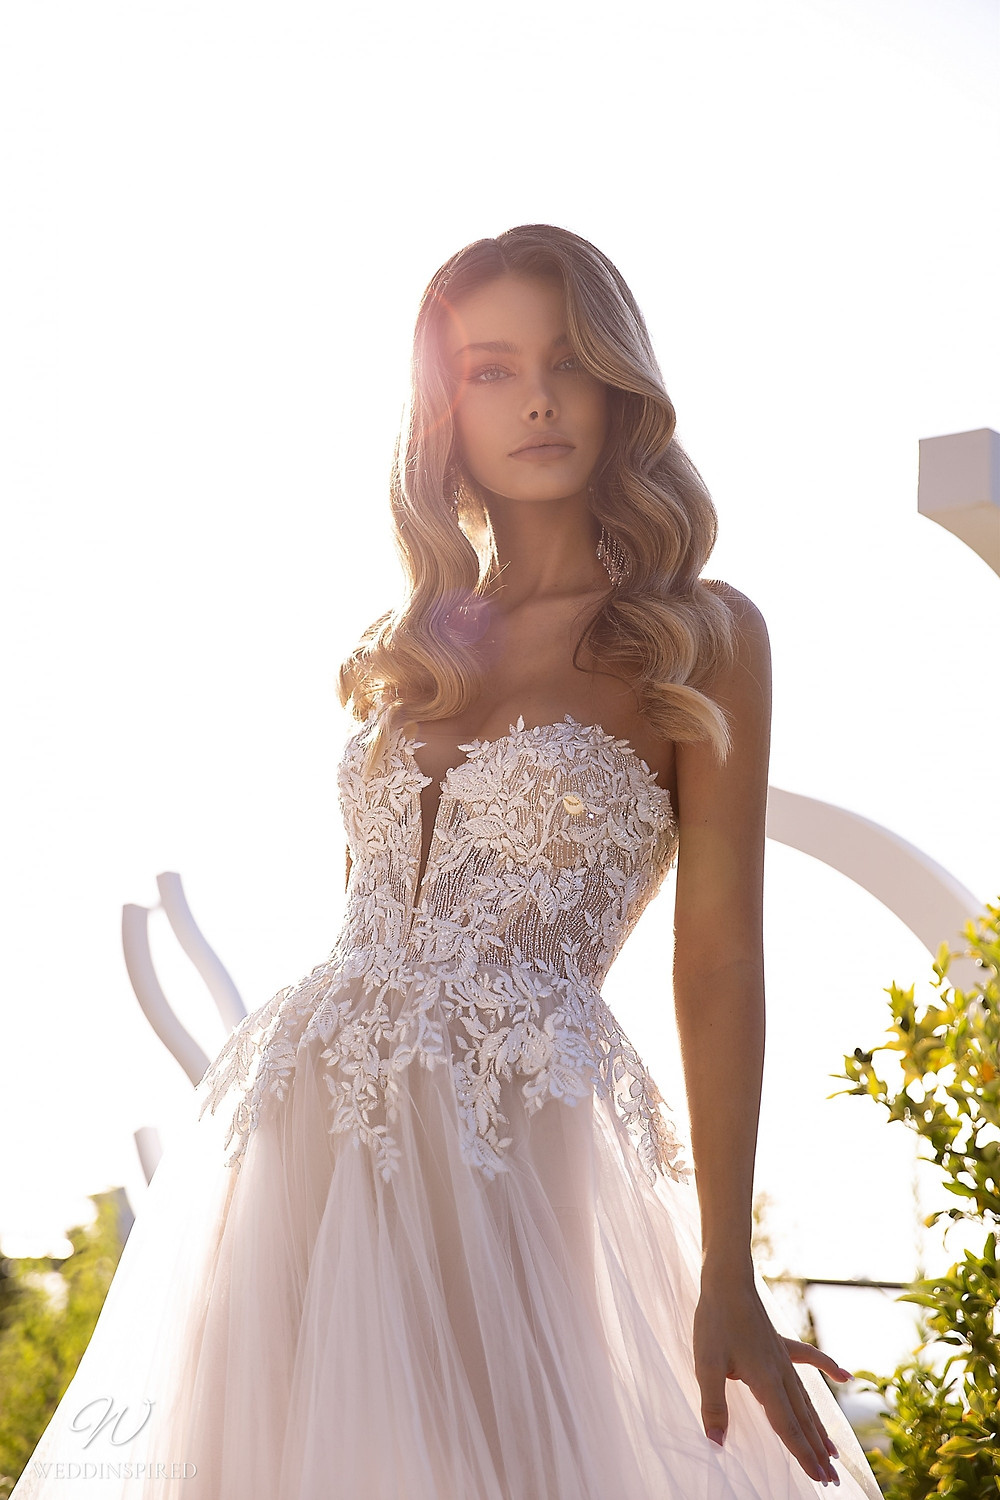 A Tina Valerdi sparkly blush strapless A-line wedding dress with a lace bodice and sweetheart neckline